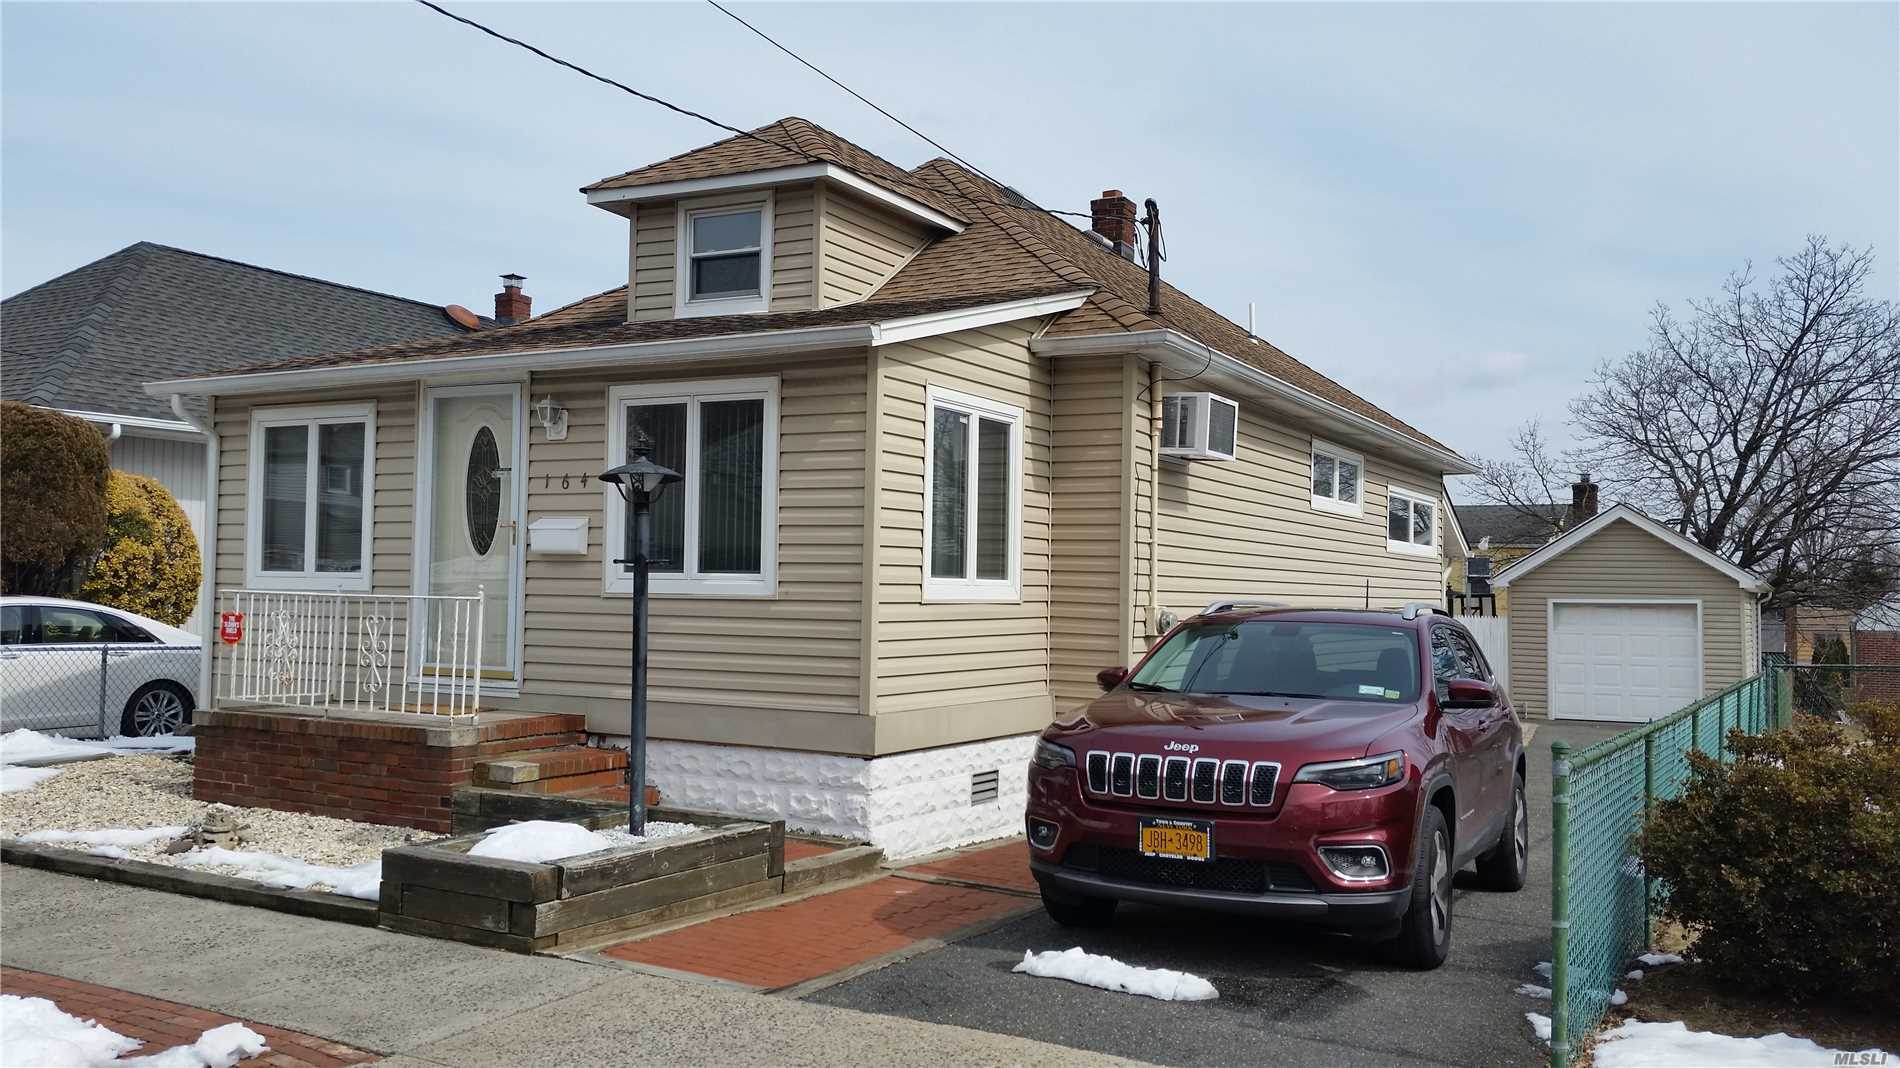 Great Home in the heart of Fr. Sq., 2 possible 3 bdrm. Full Finished Basement, Private Driveway with detached garage, Mint condition, priced to sell !!! Roof and Siding within the last 7 yrs.